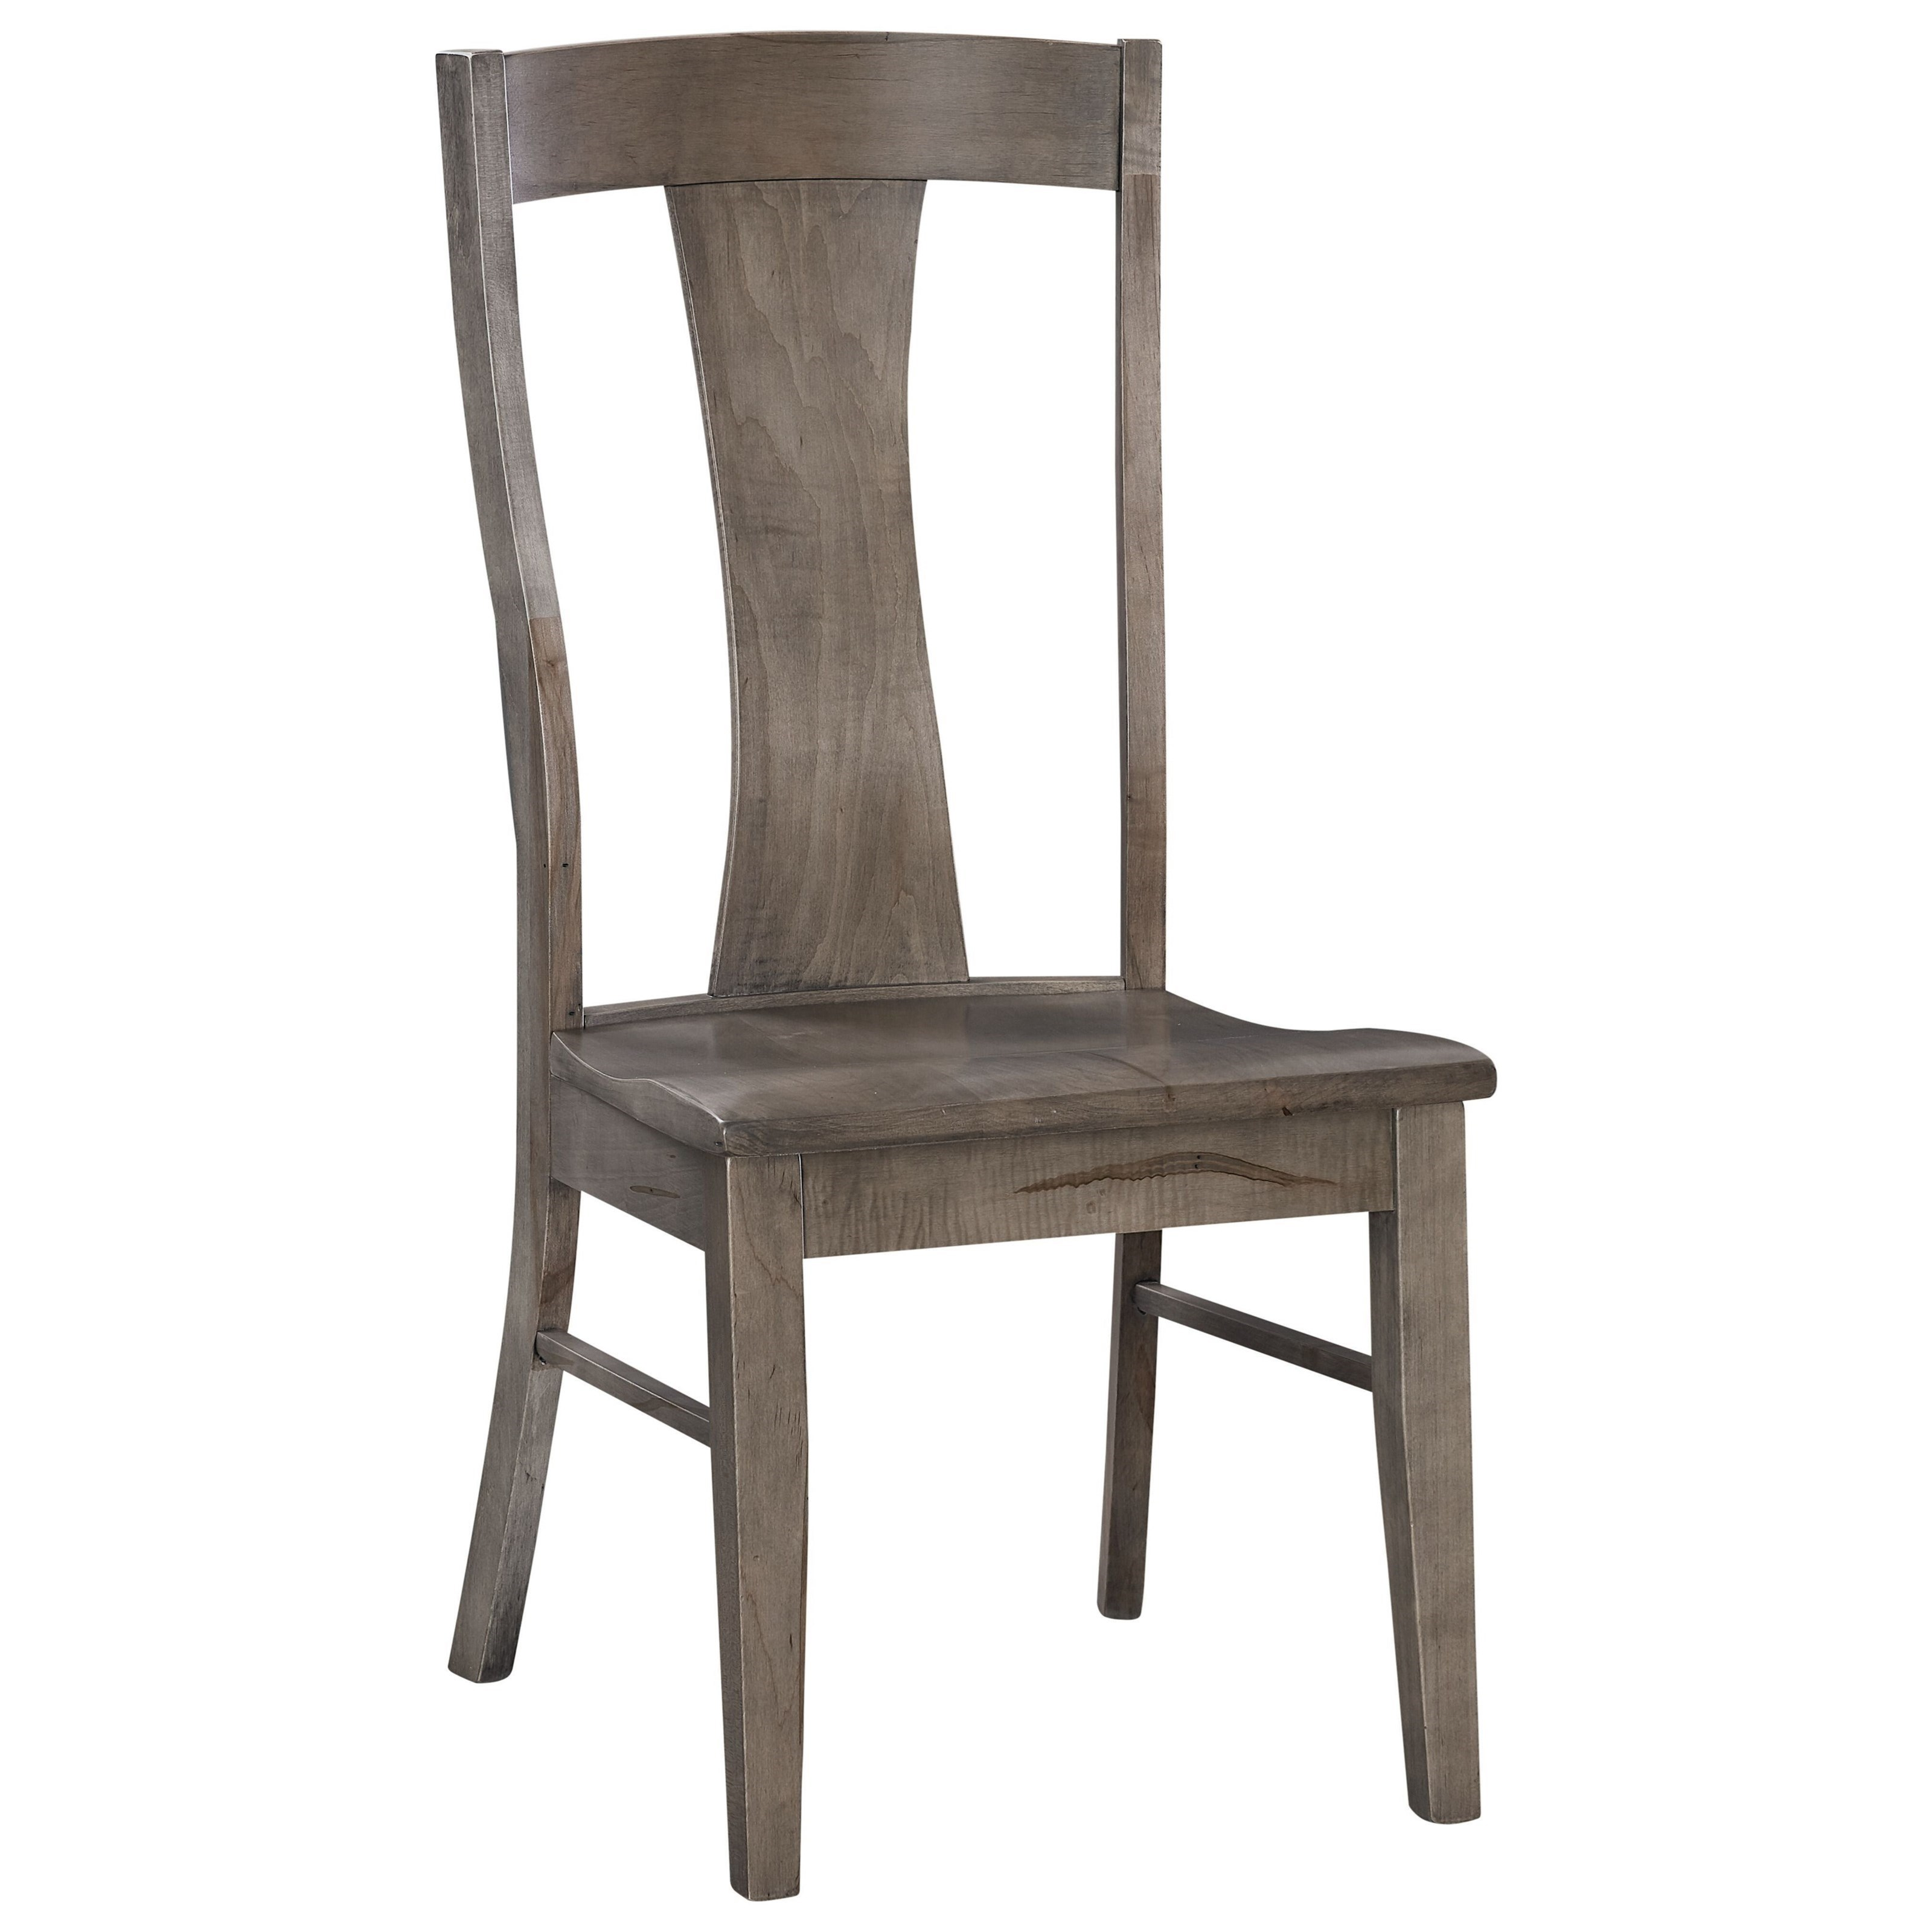 BenchMade Side Chair by Bassett at Bassett of Cool Springs